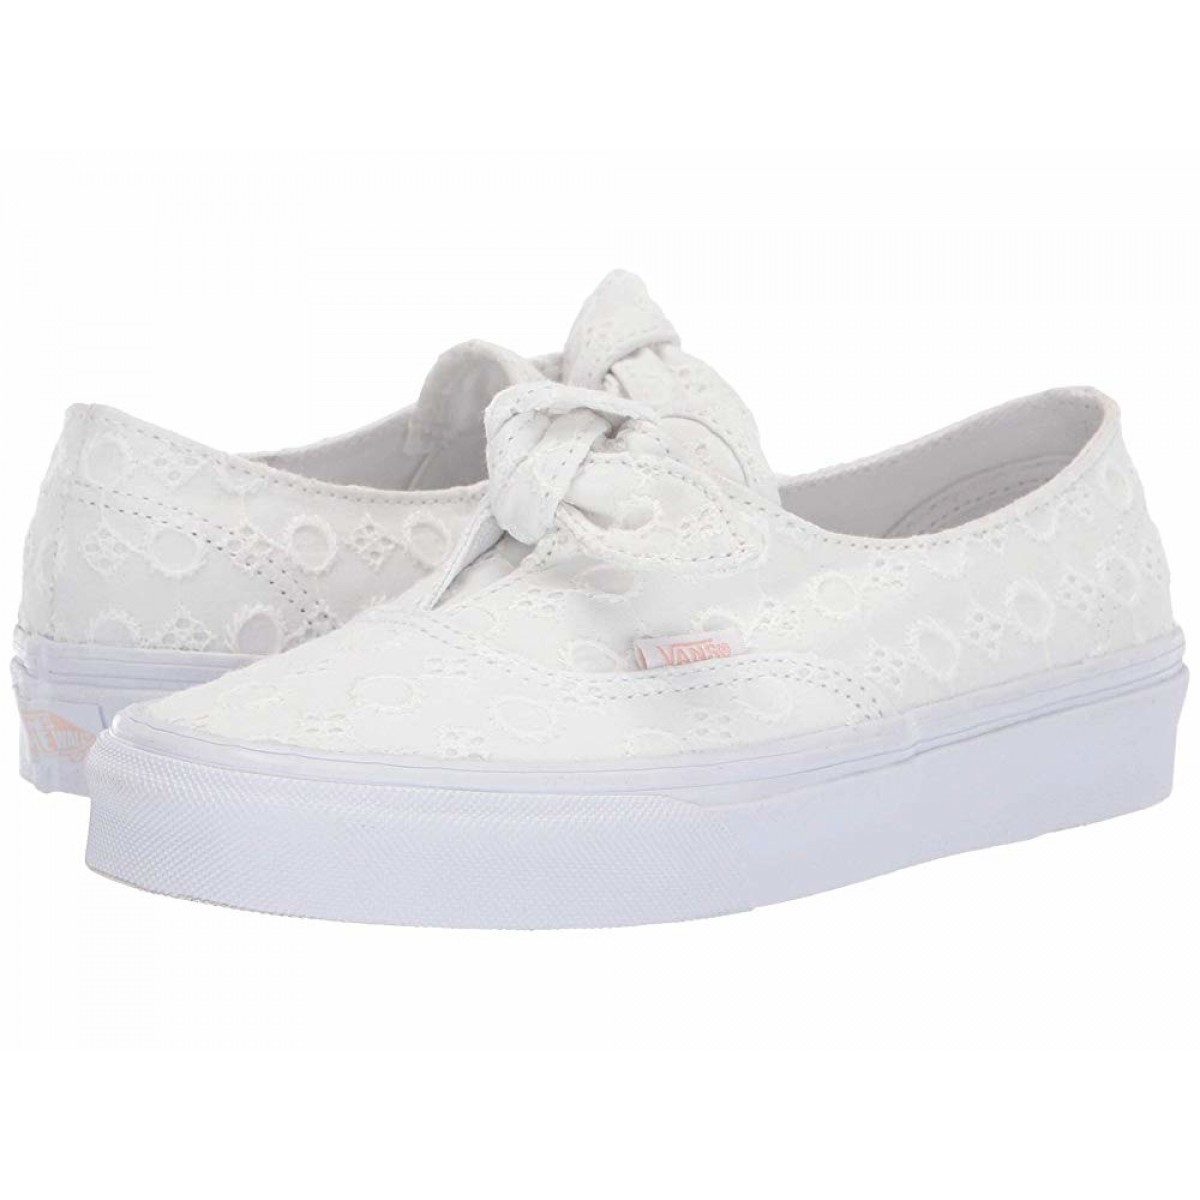 Vans Authentic Knotted (Cotton Lace) True White/True White for Sale